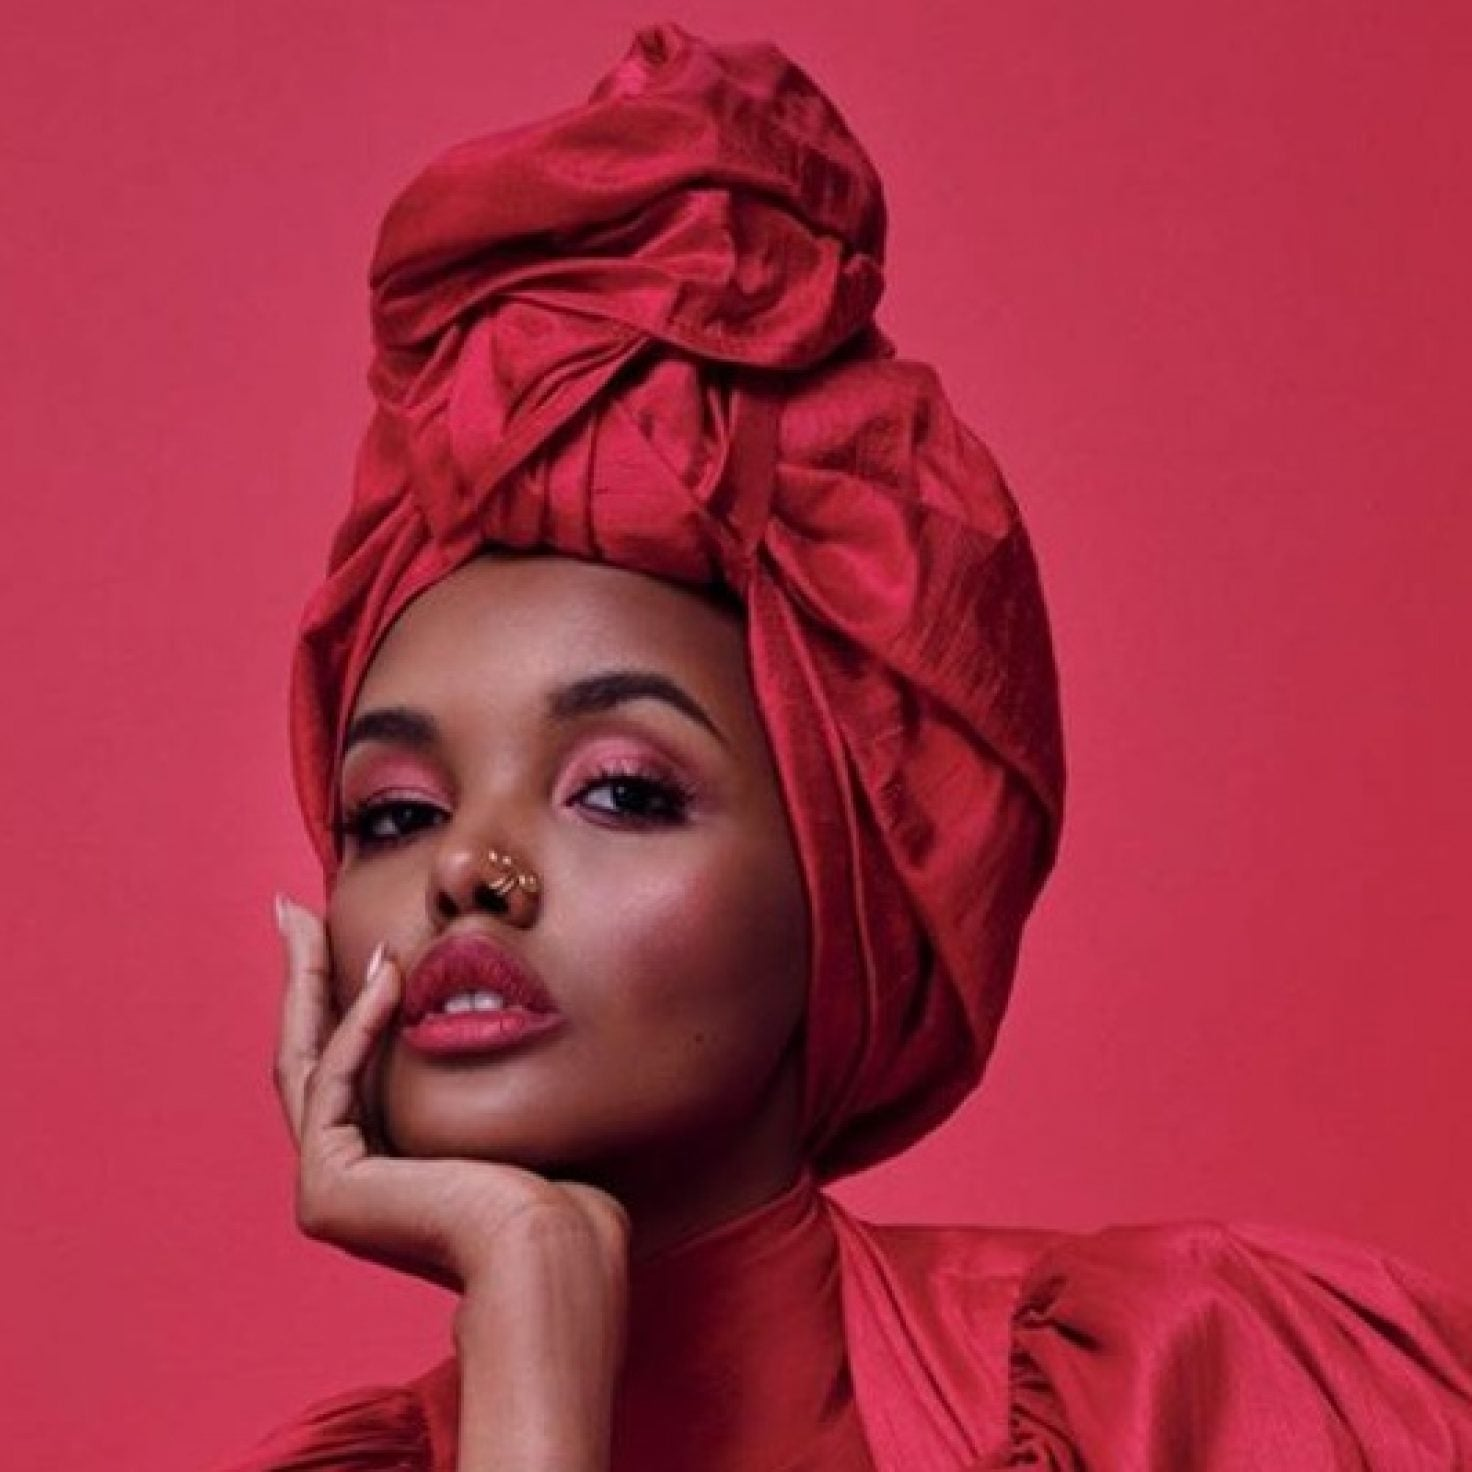 The Best Looks From Our January/February Cover Star Halima Aden